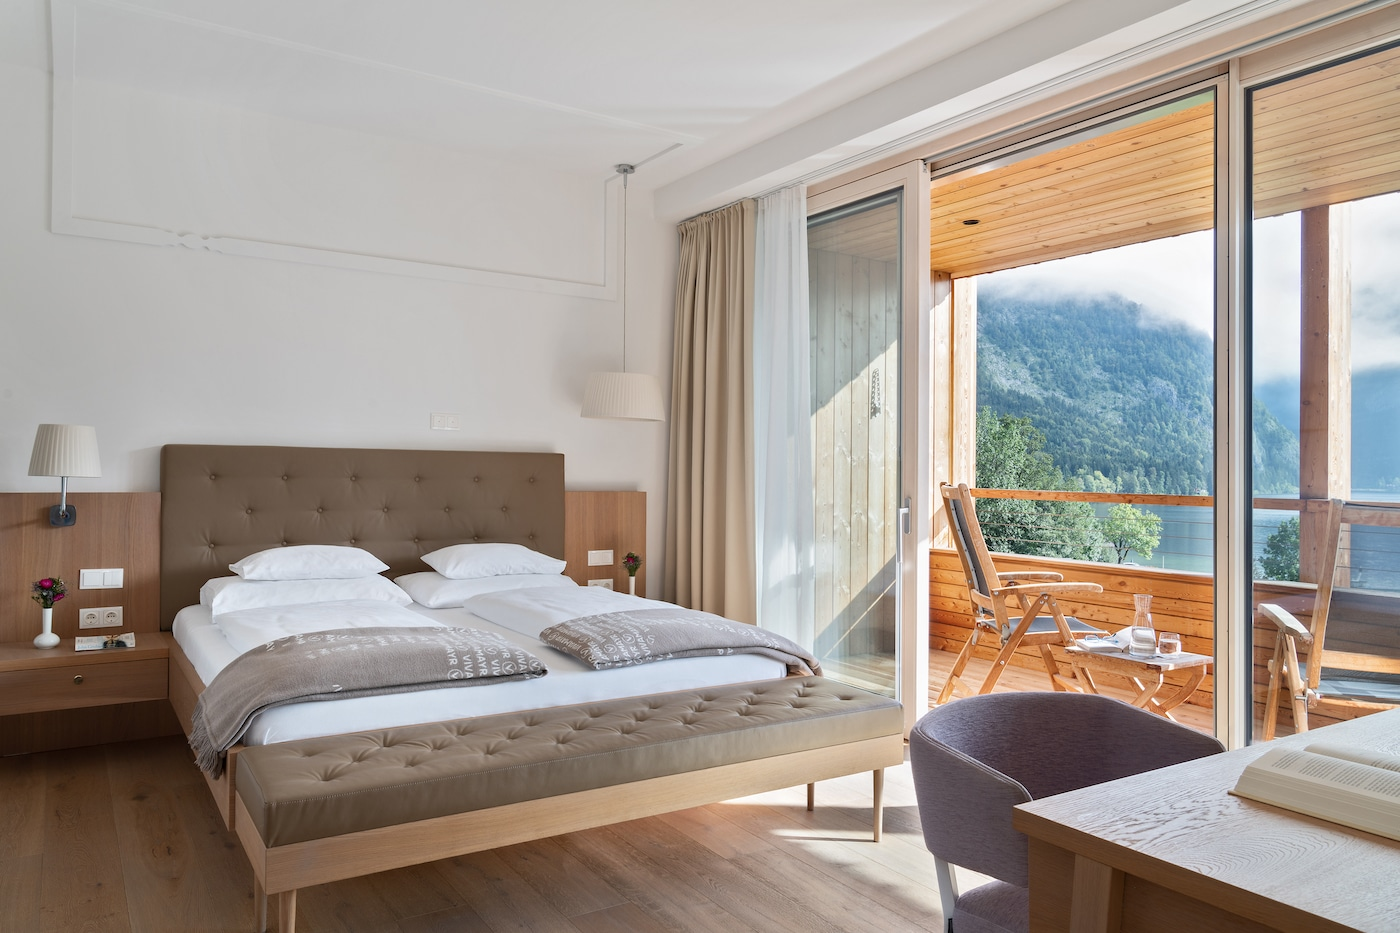 bright bedroom with wide windows in Junior Suite with lake view VIVAMAYR Altausee